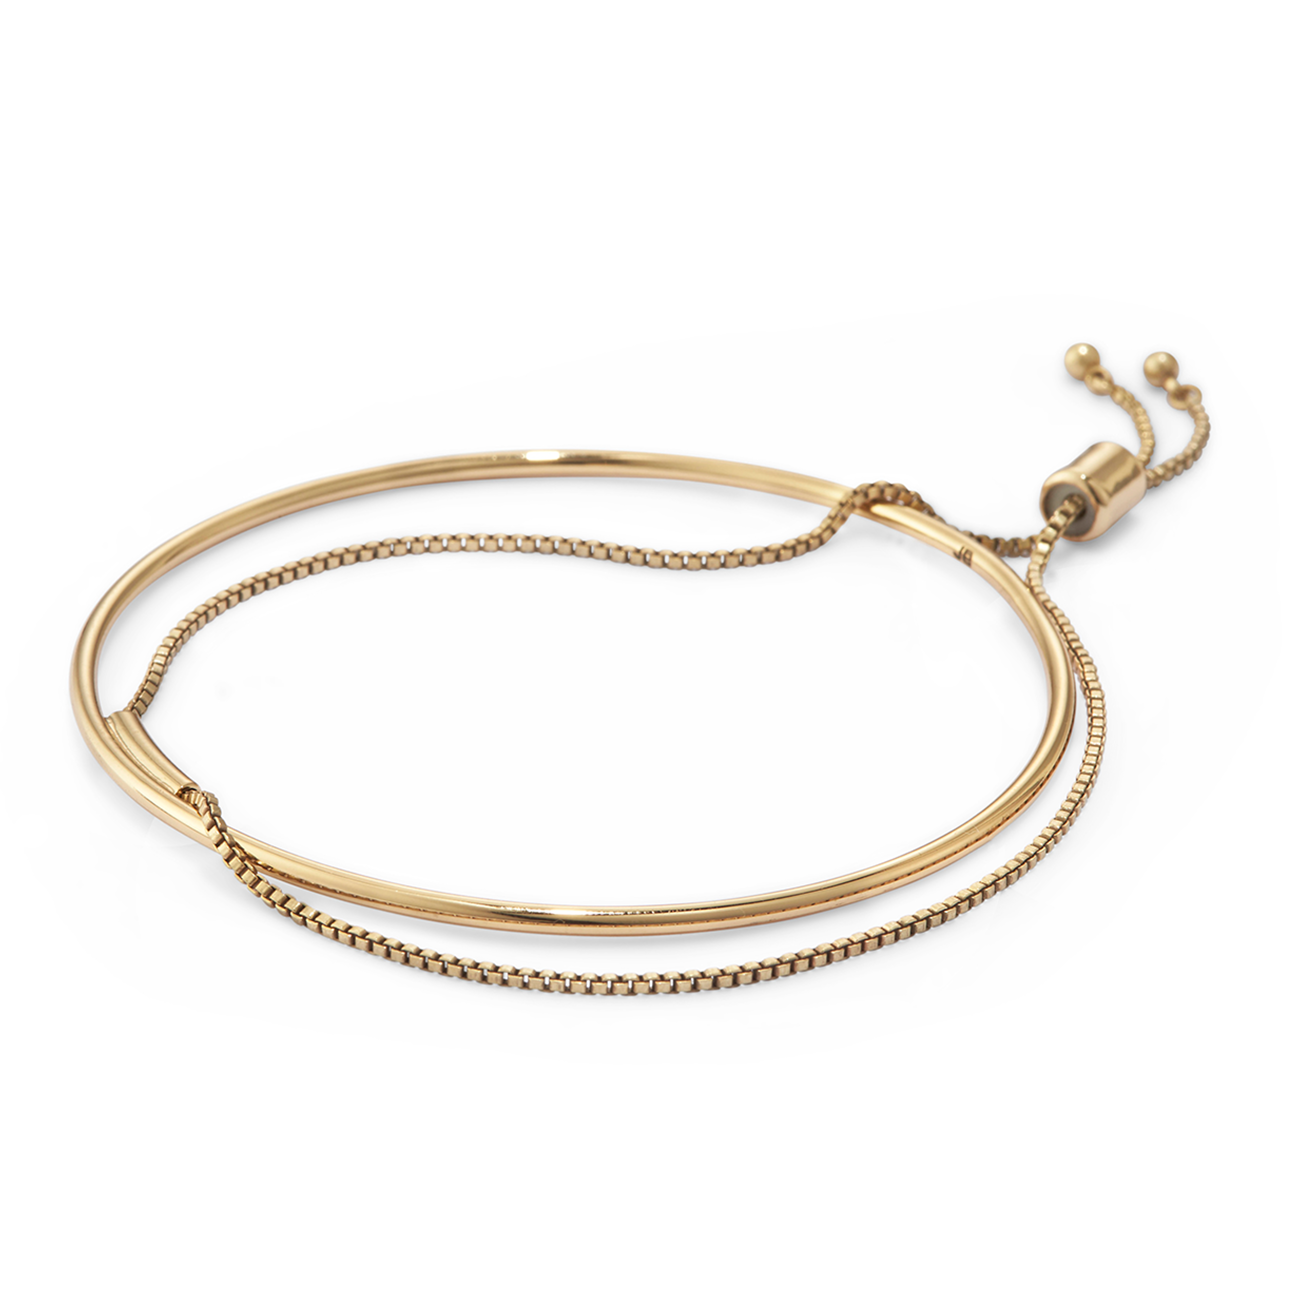 Thin Gold adjustable Sadie Bangle bracelet by Jenny Bird